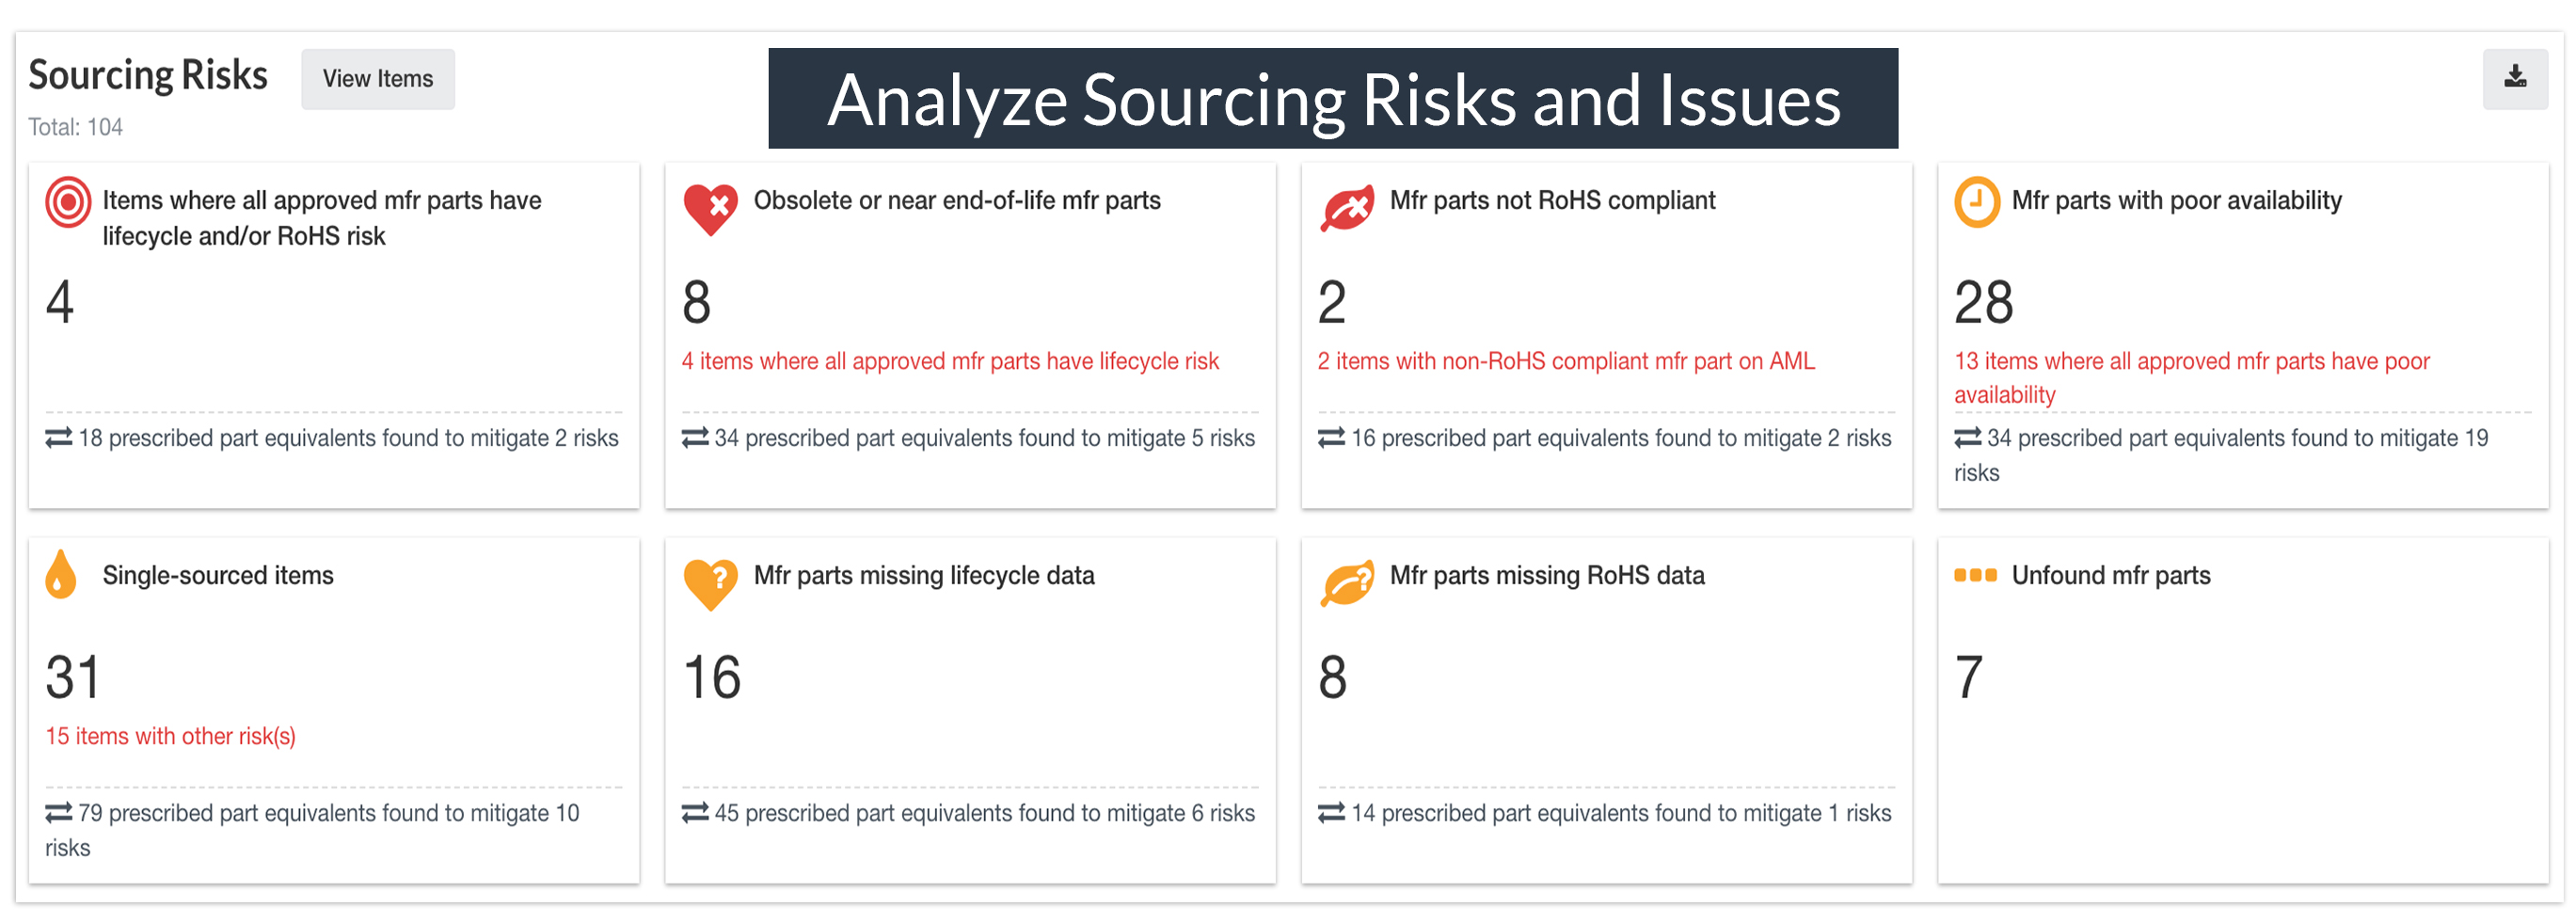 Analyze Sourcing Risks and Issues